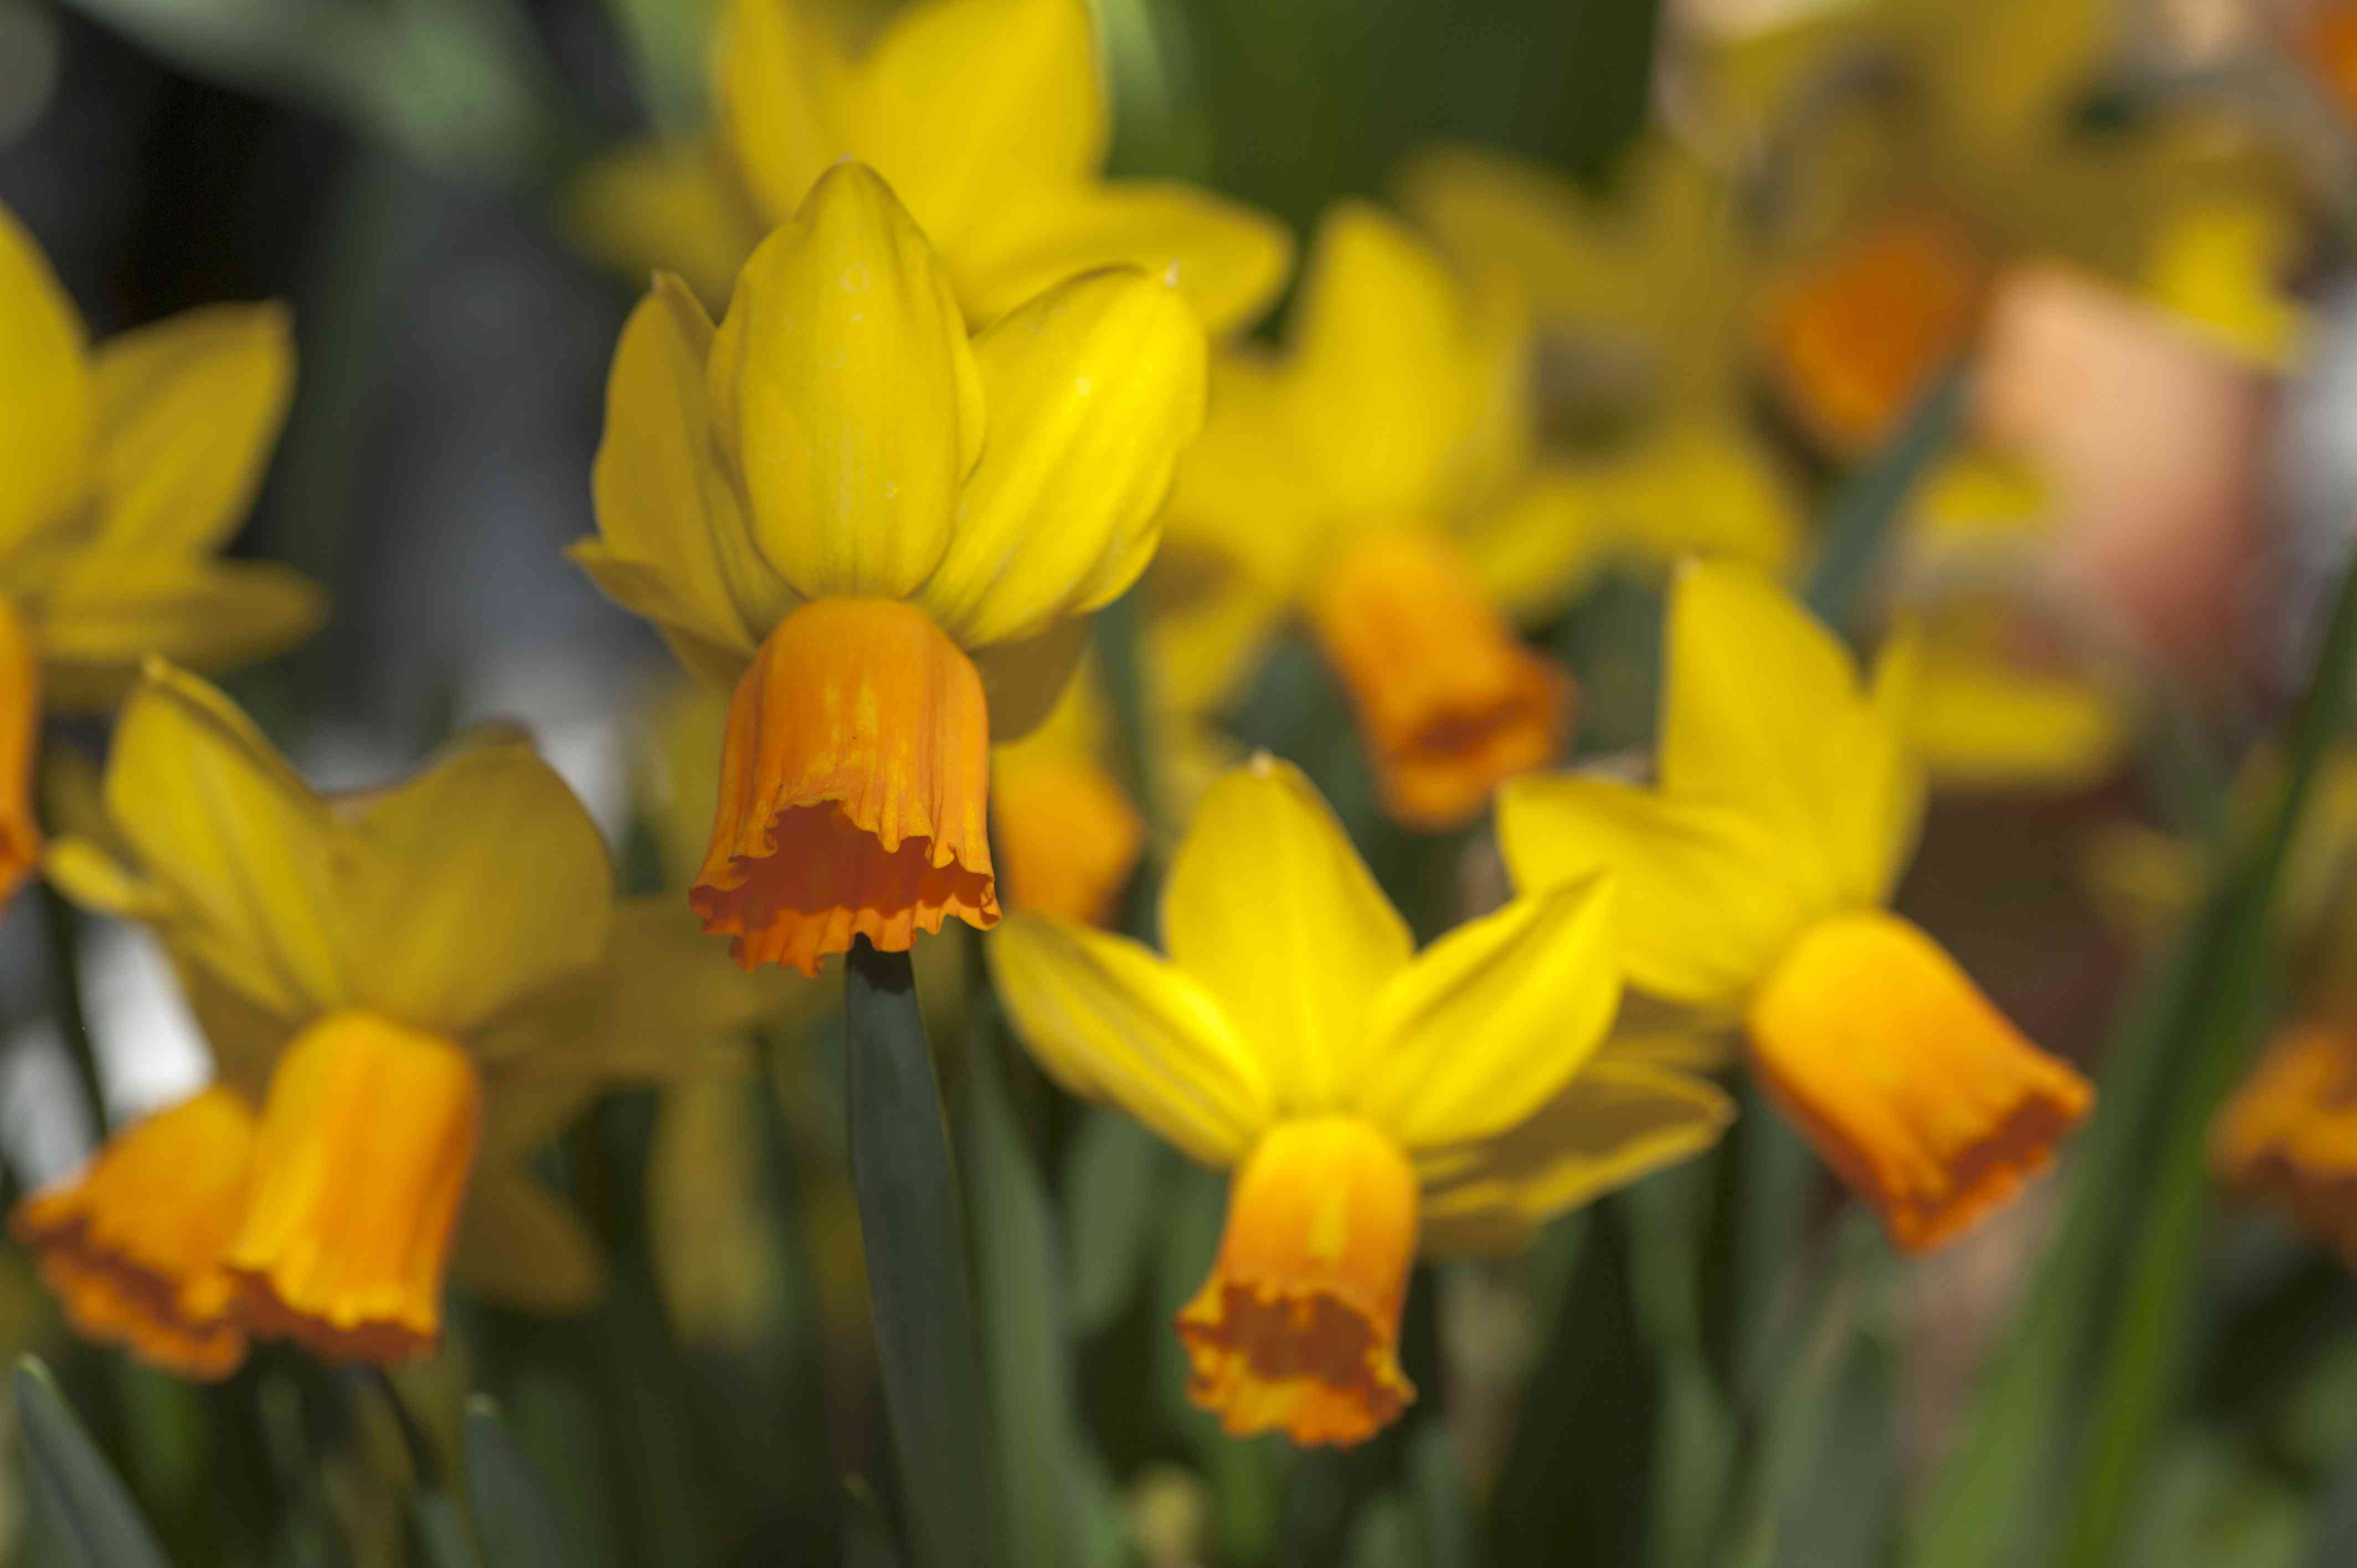 Cyclamineus daffodil with yellow swept-back flowers and orange bell